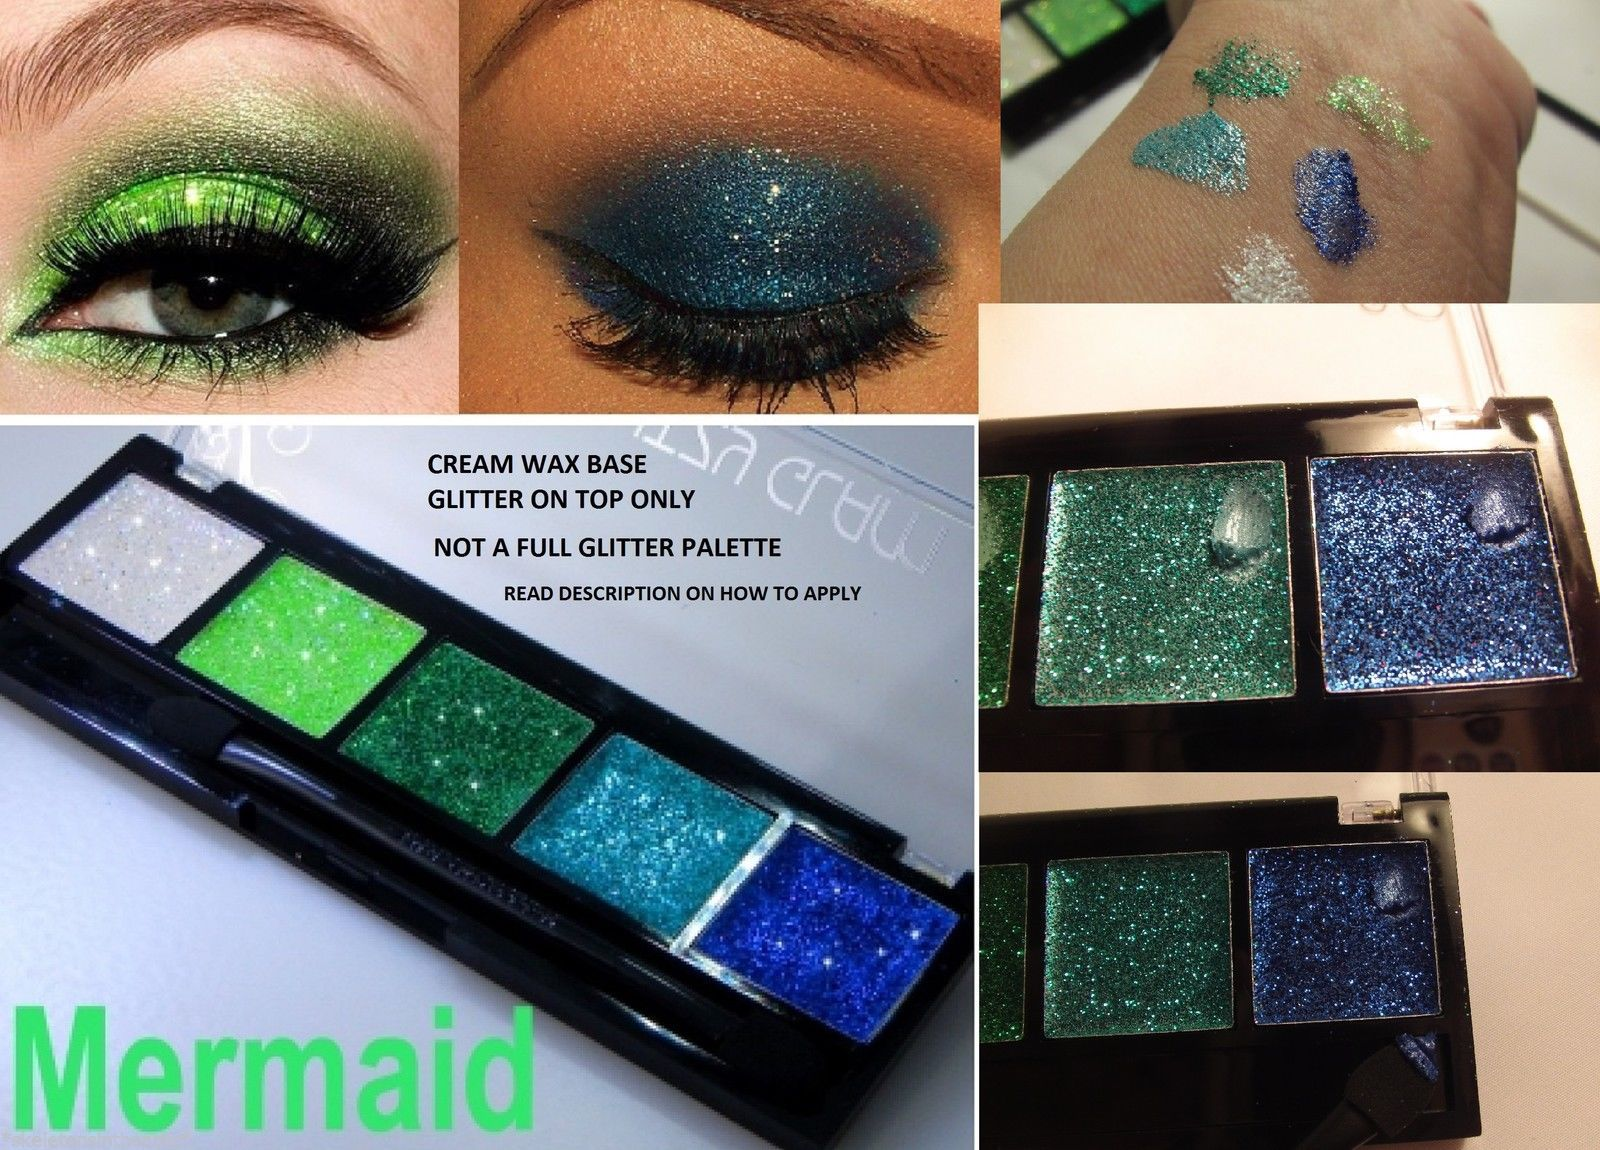 Pin by Pinne Hedhe on Swatches Glitter eyeshadow palette